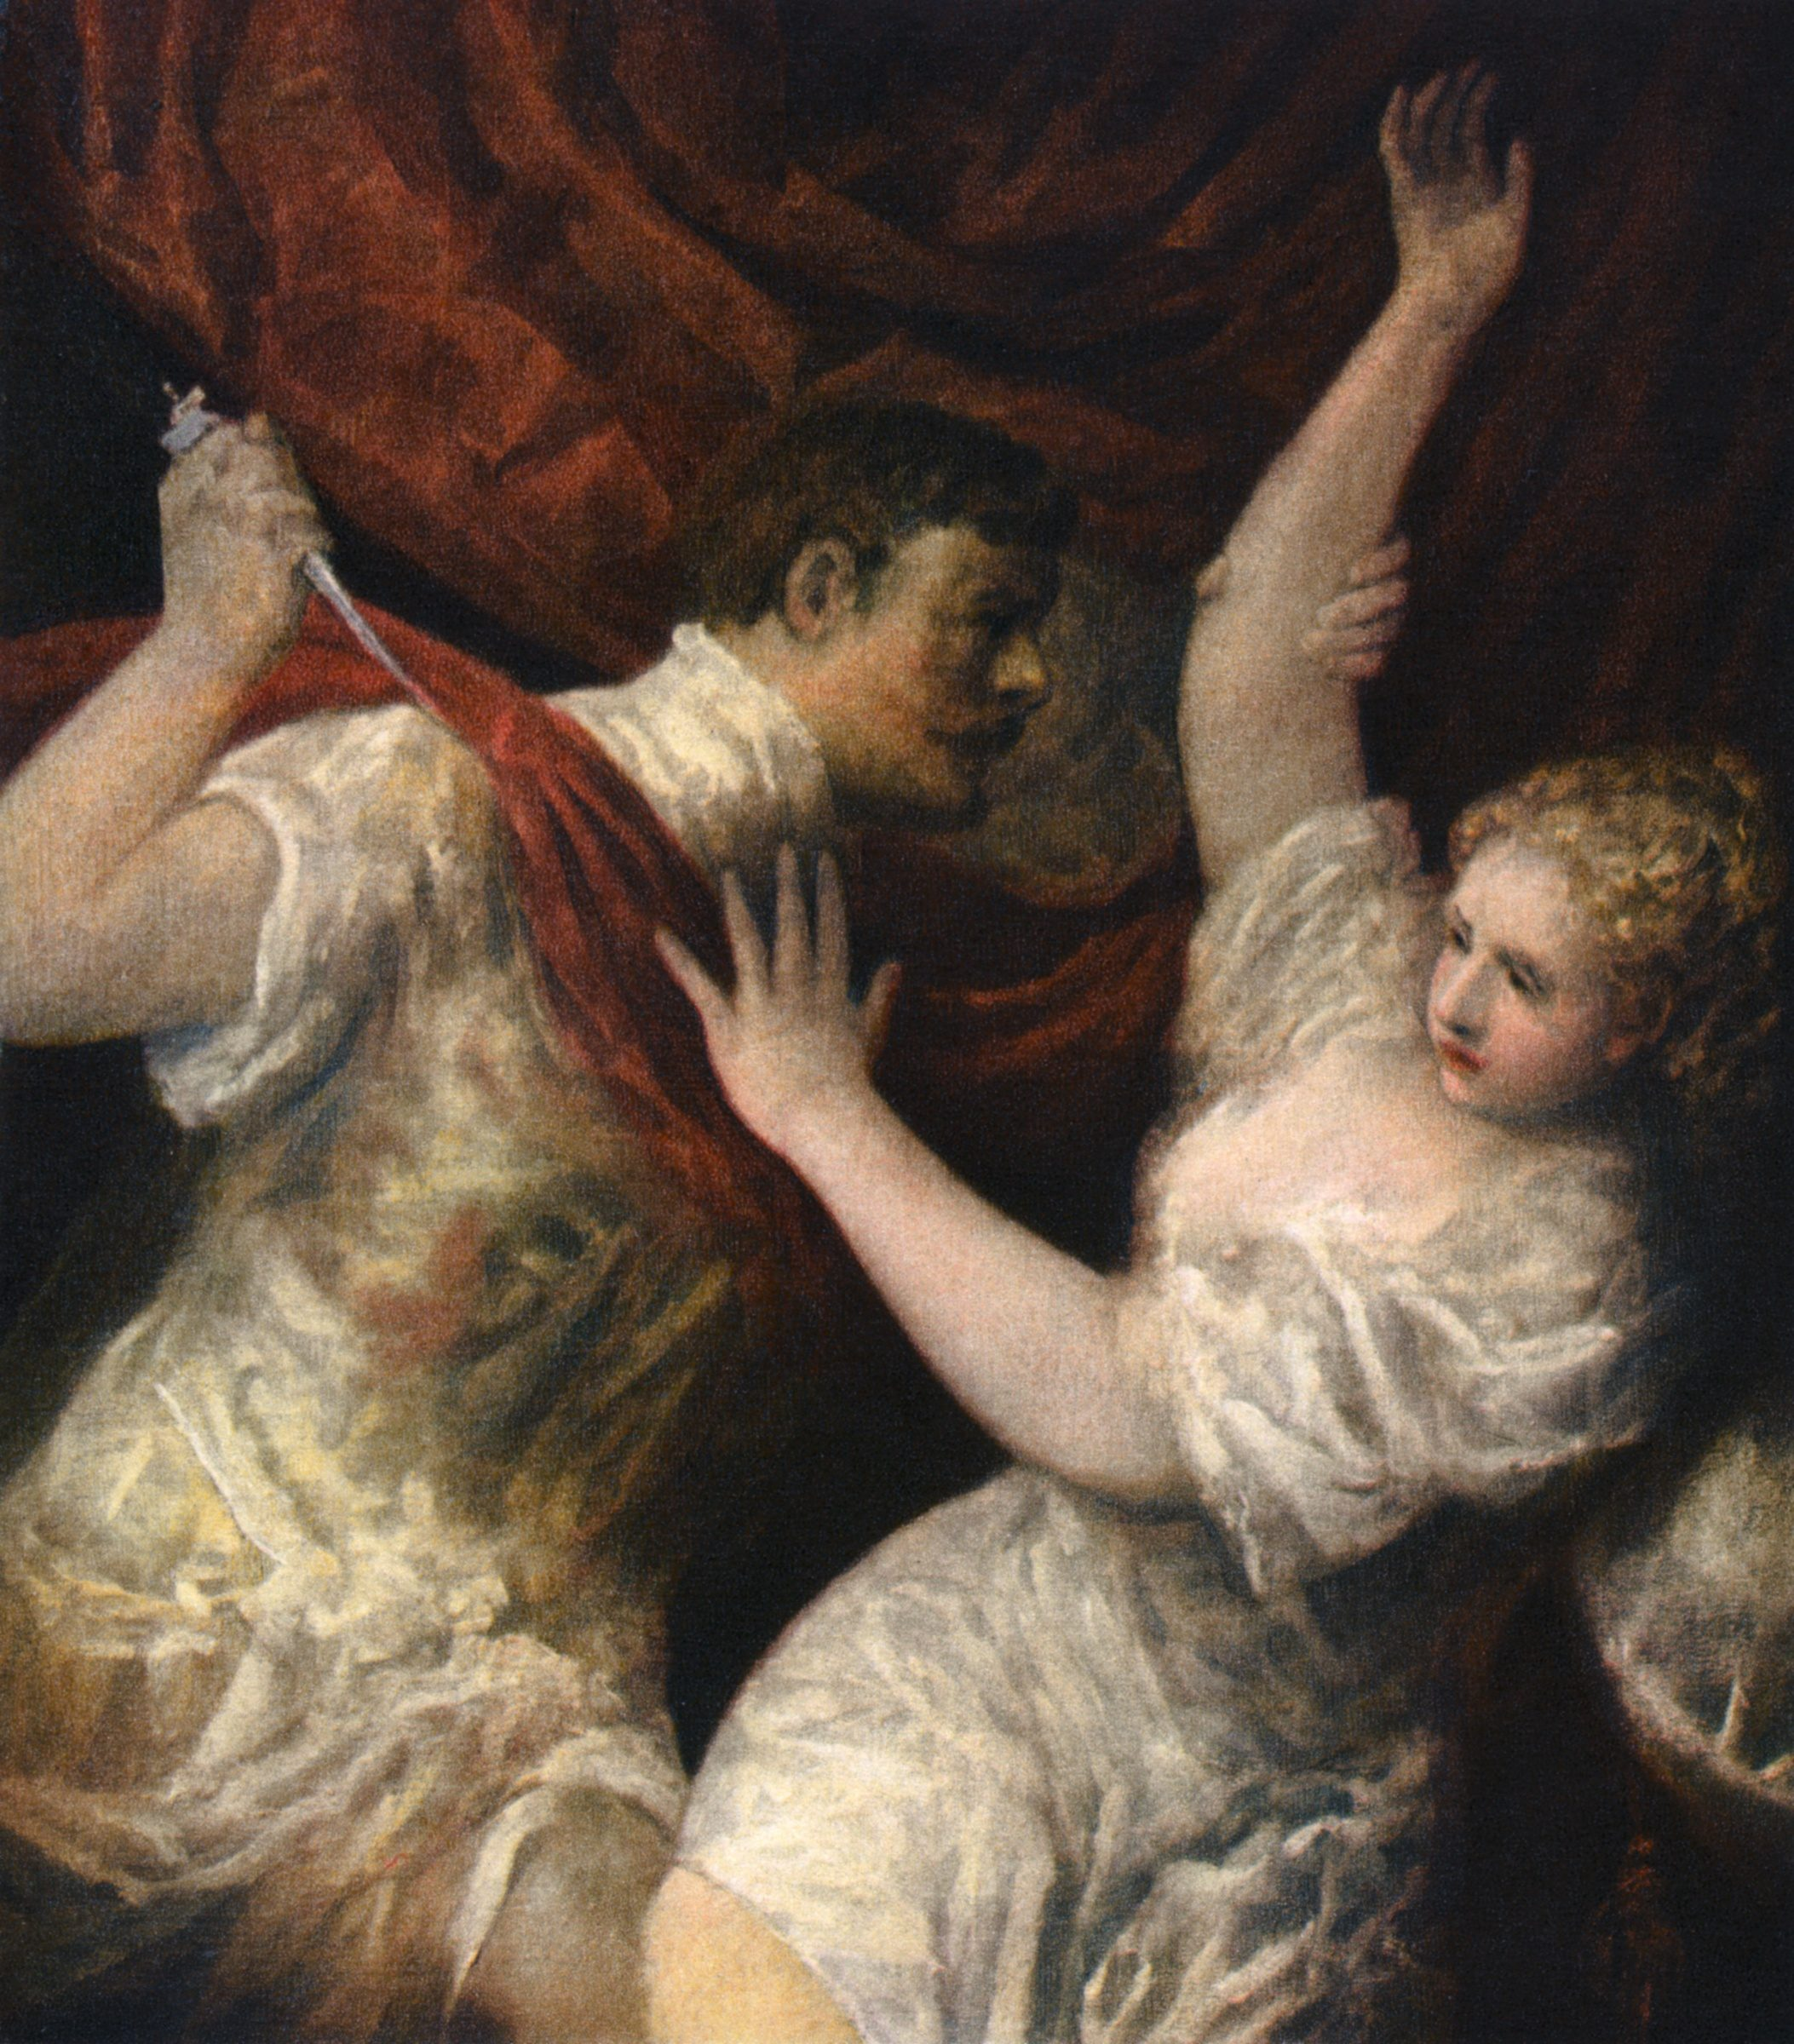 Male sex slaves in ancient rome and greece